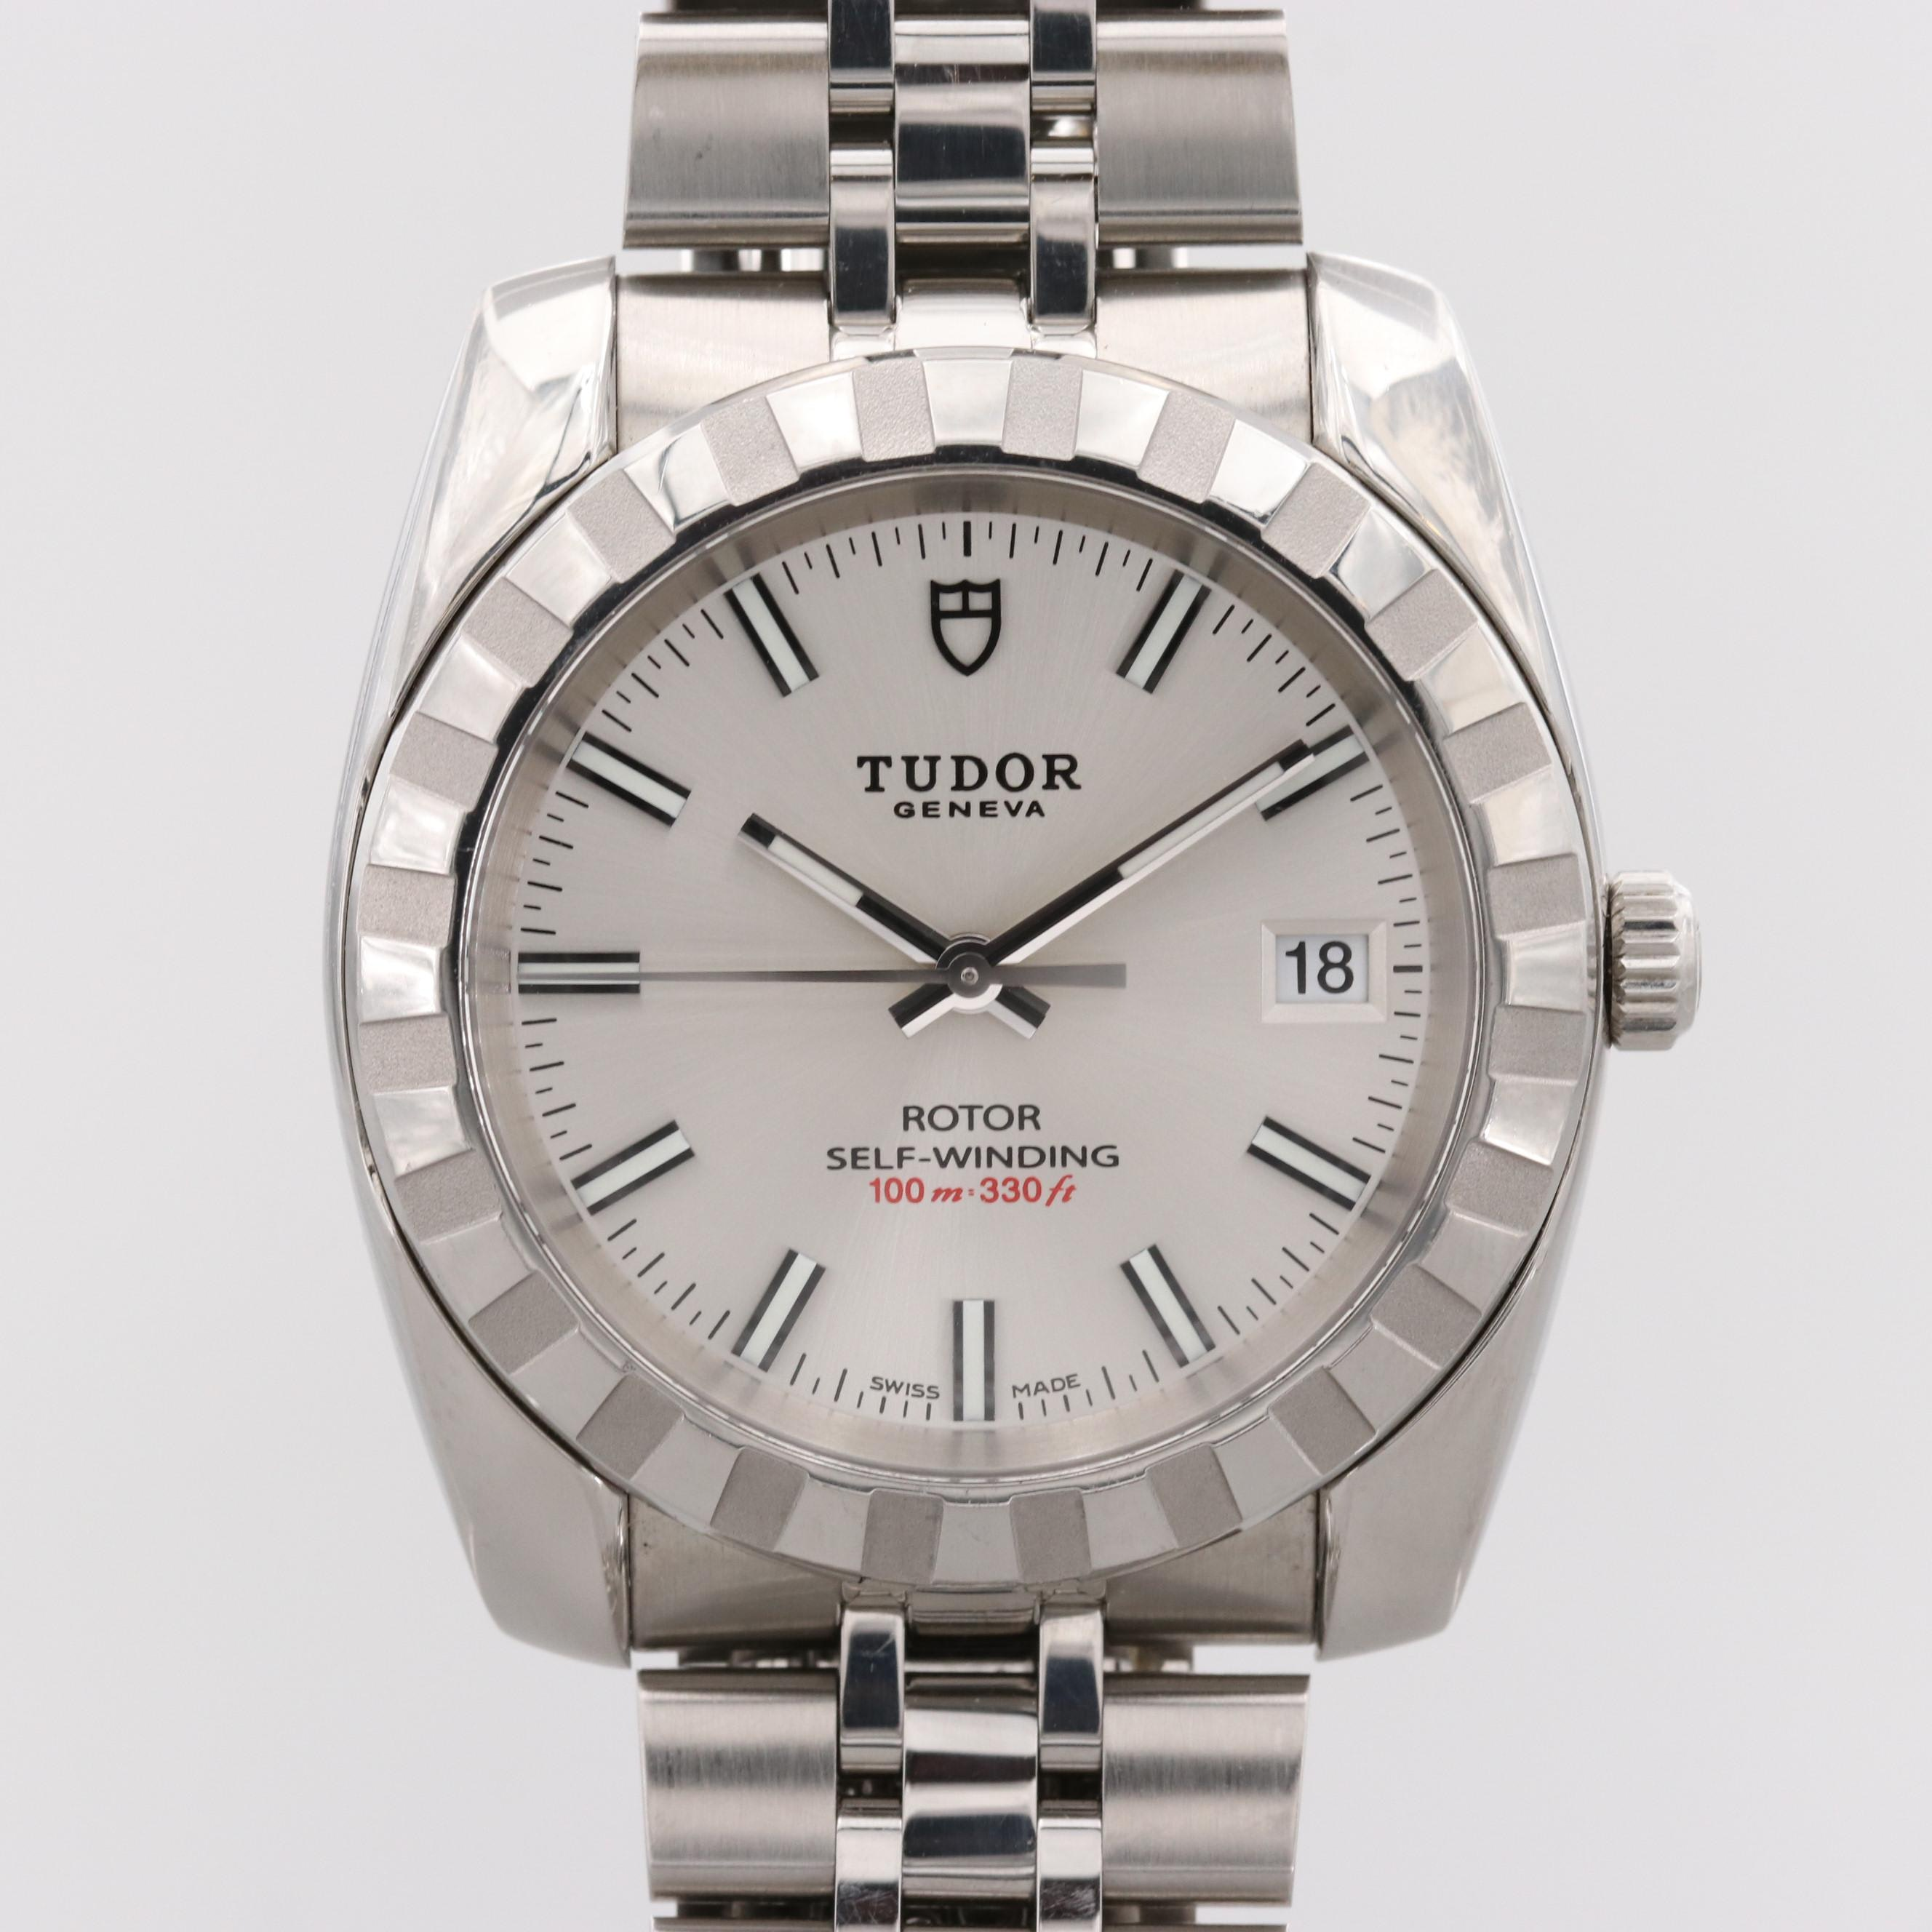 Tudor By Rolex Auto Prince Stainless Steel Wristwatch With Date